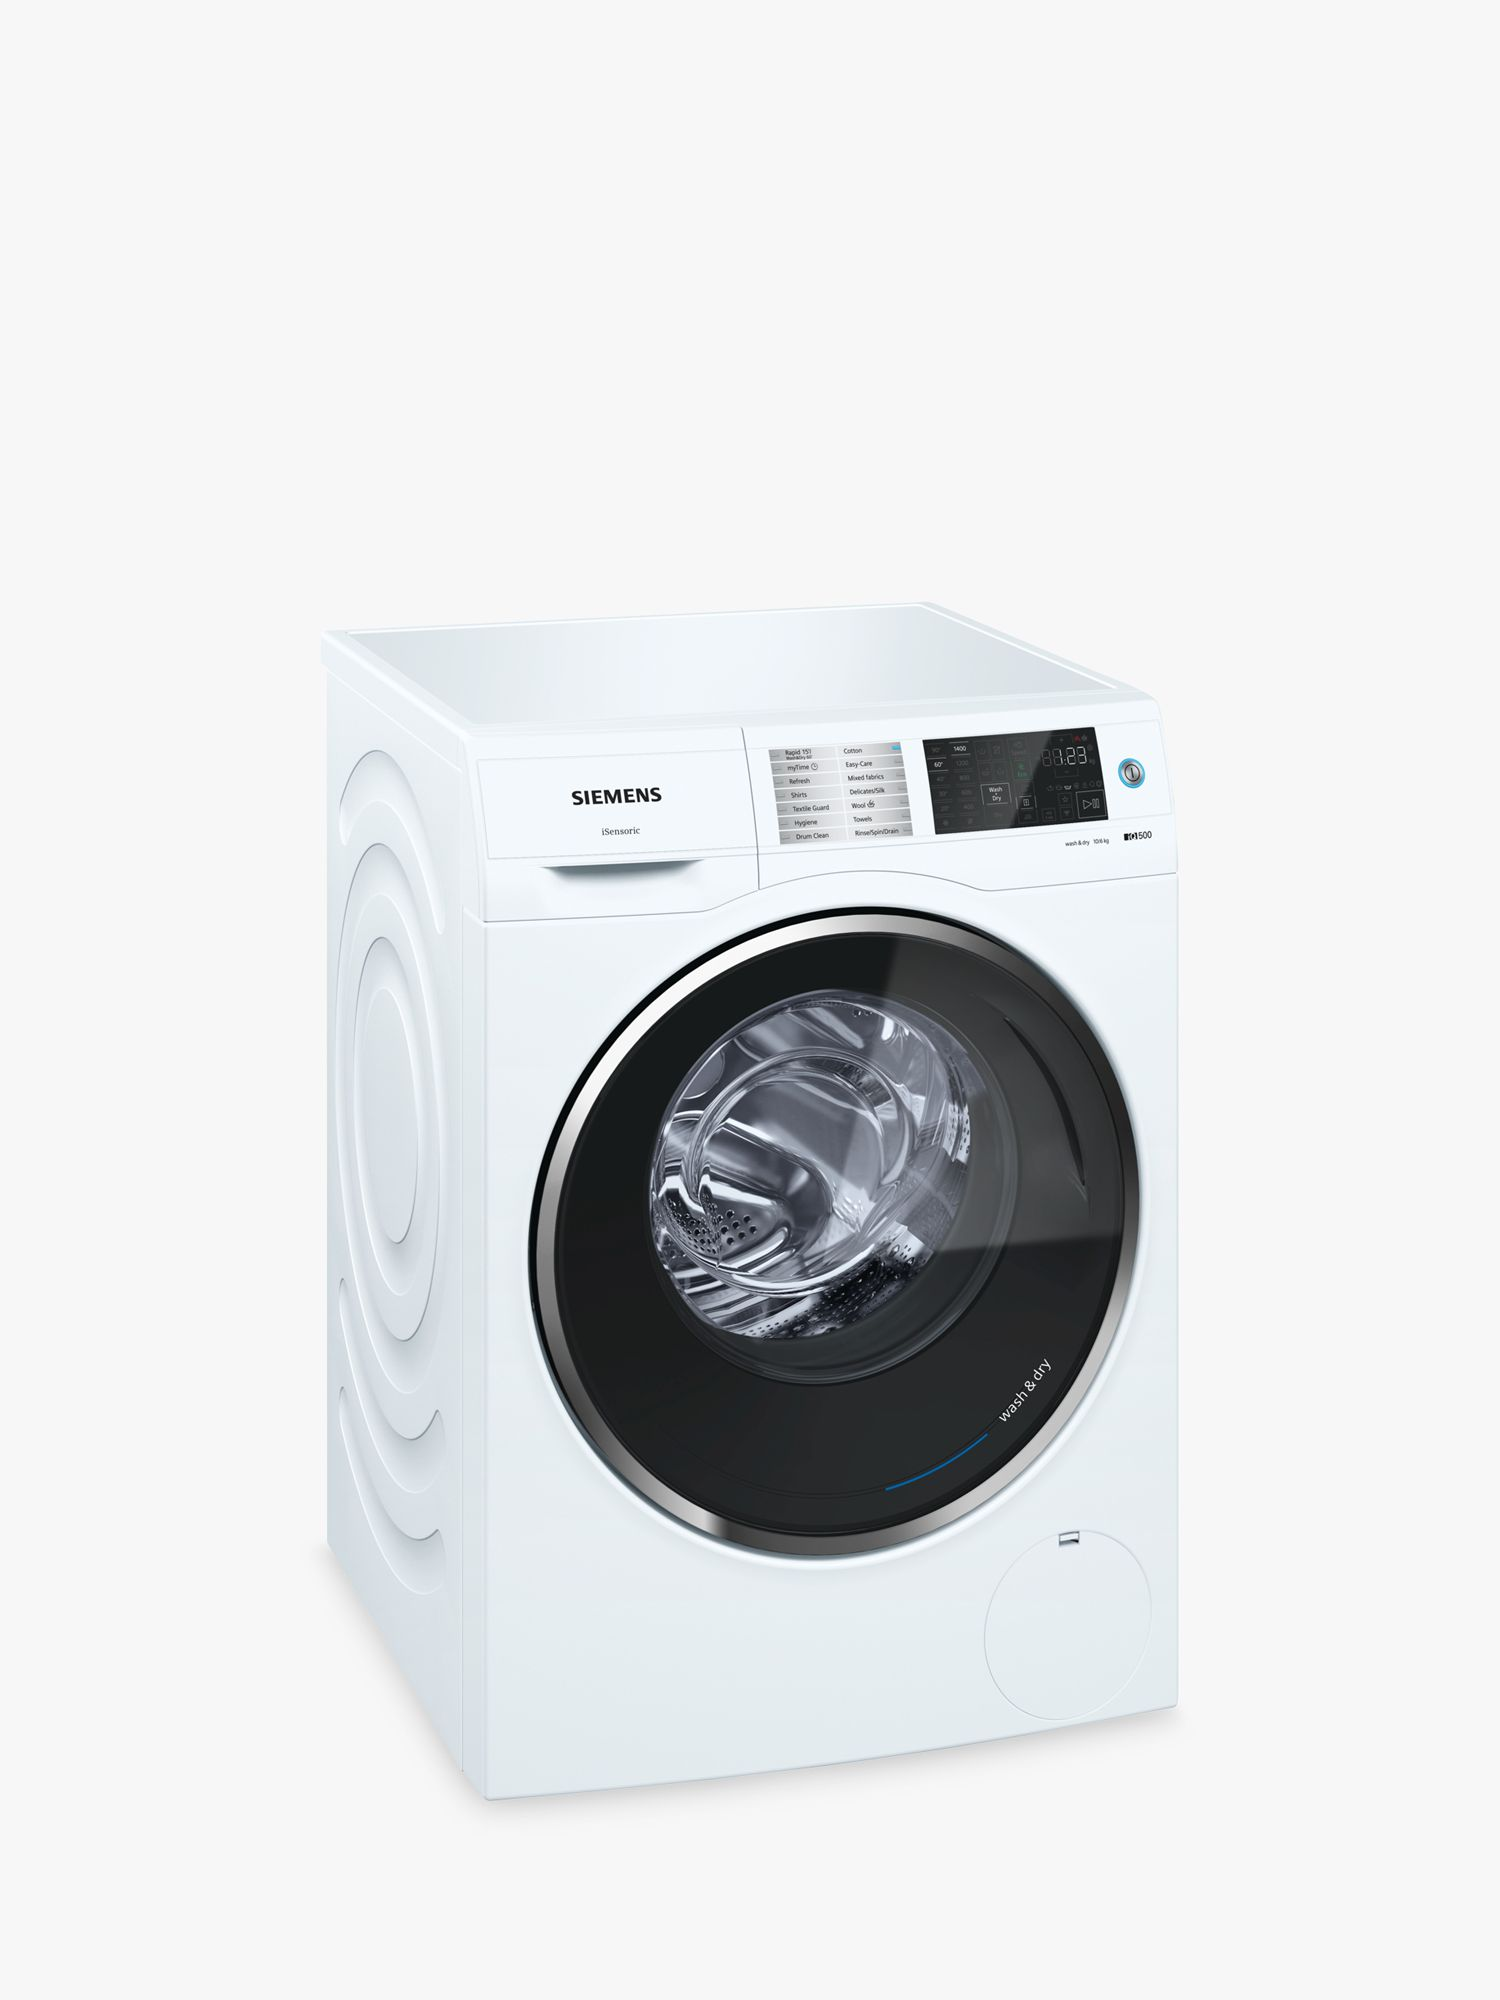 Siemens Siemens WD14U520GB Washer Dryer, 10kg Wash/6kg Dry Load, A Energy Rating, 1400rpm Spin, White